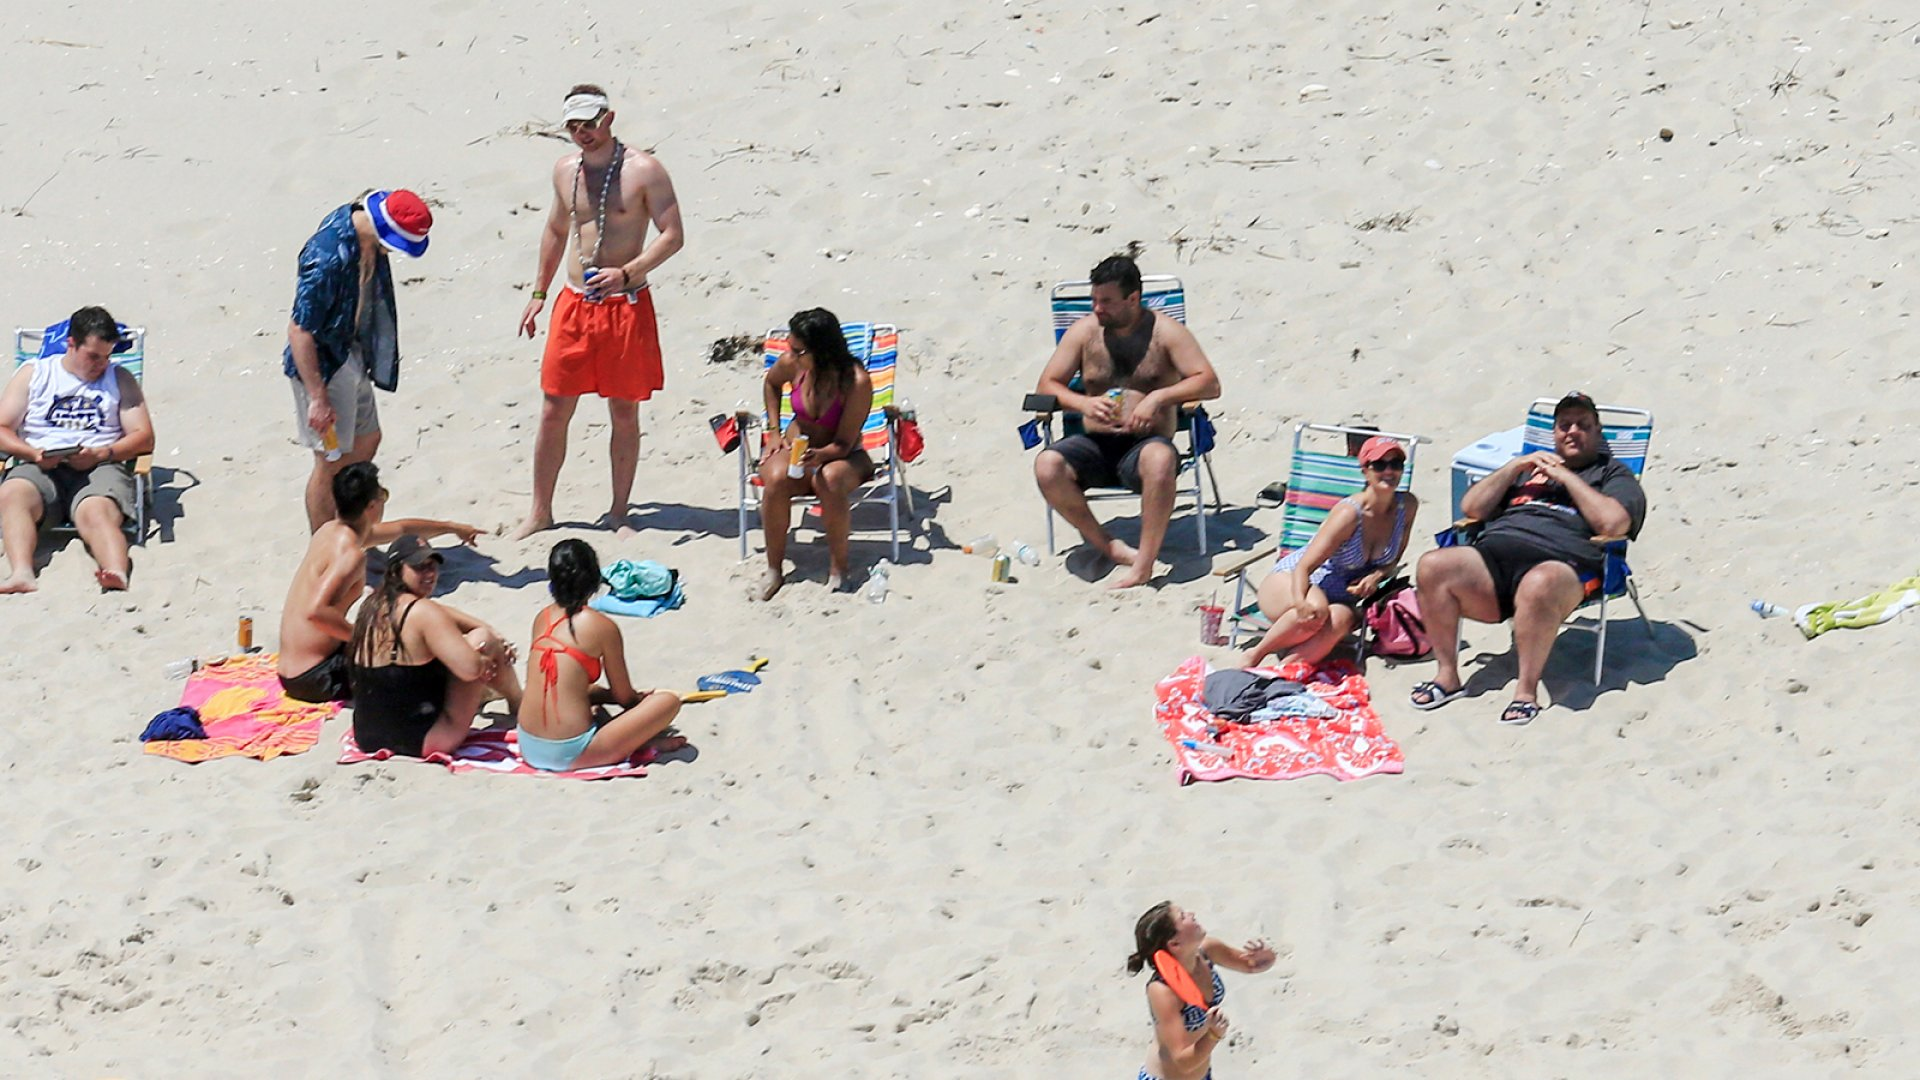 """New Jersey governor Chris Christie, right, uses the beach with his family and friends at the governor's summer house at Island Beach State Park in New Jersey. Christie is defending his use of the beach, closed to the public during the state's government shutdown, saying he had previously announced his vacation plans and the media had simply """"caught a politician keeping his word."""""""